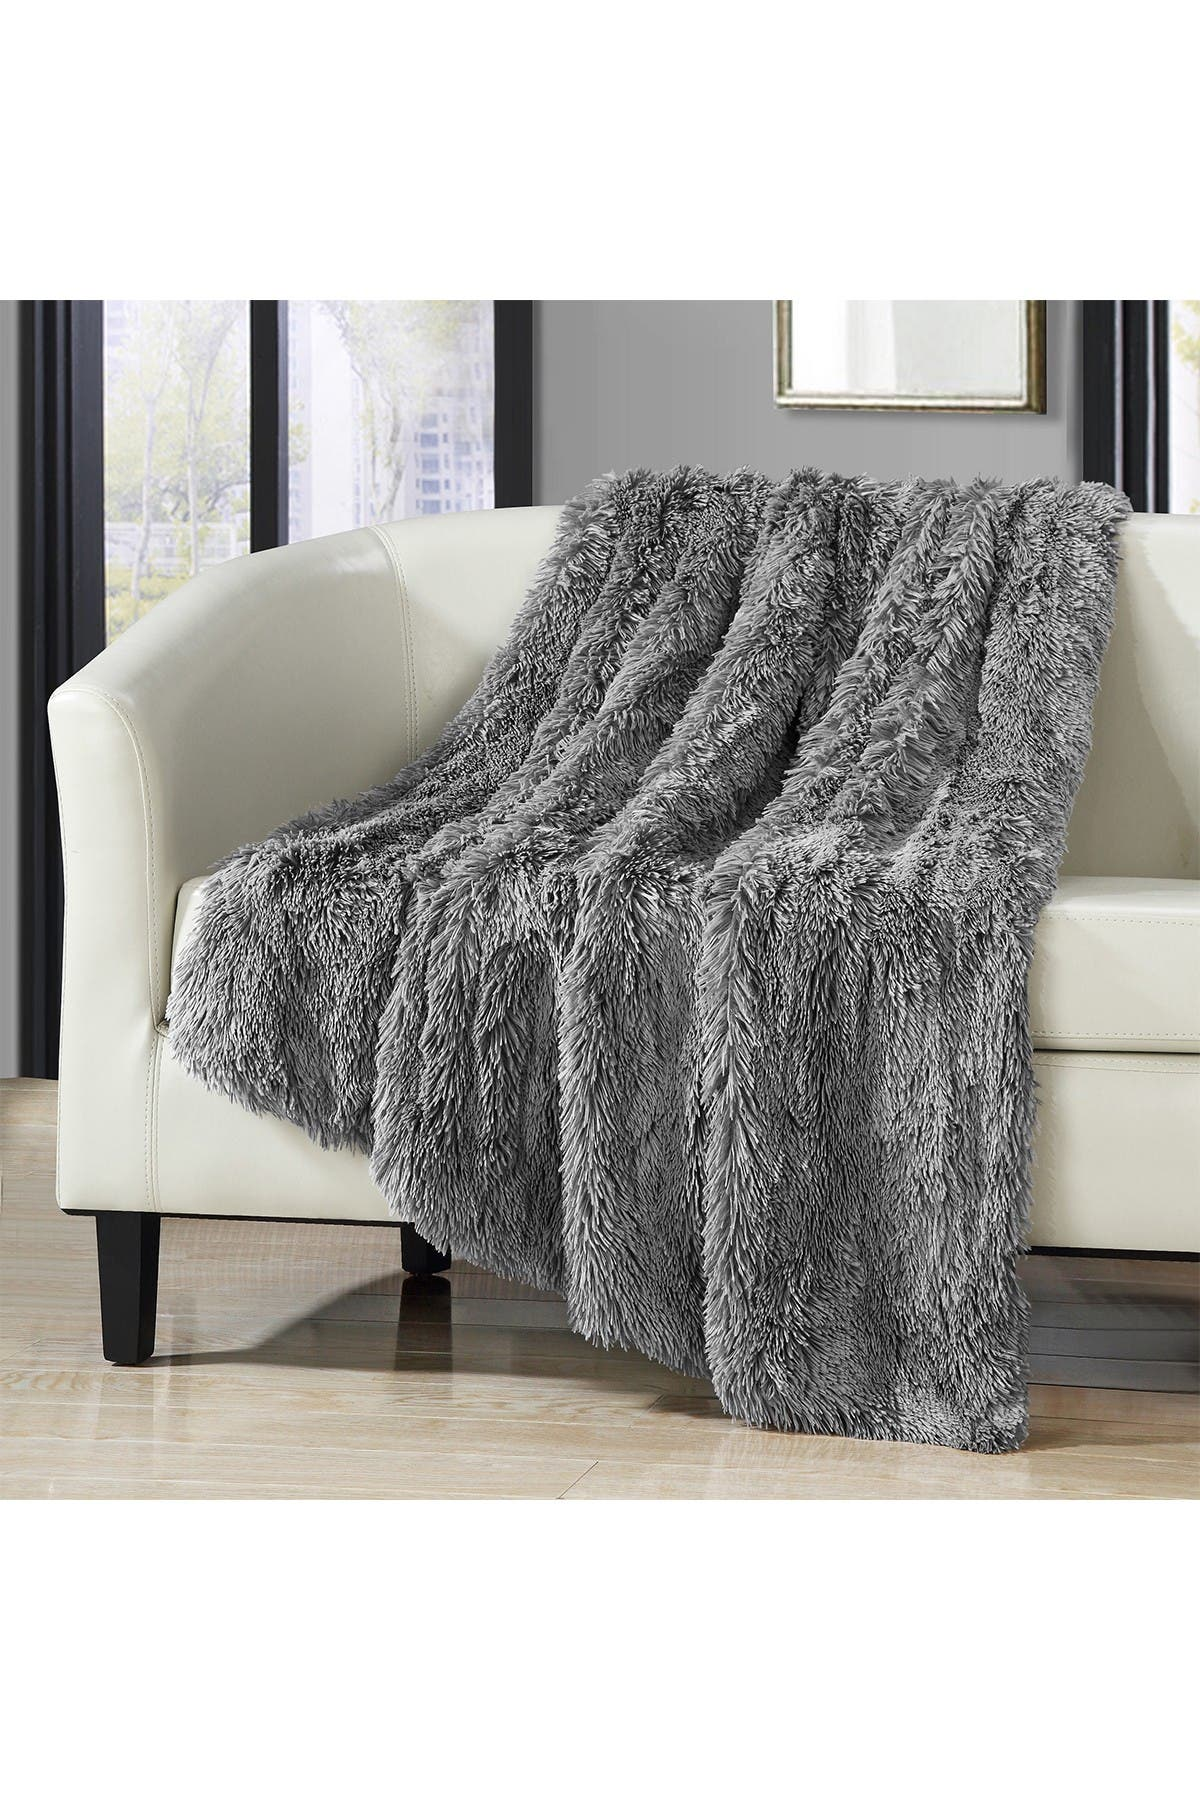 Image of Chic Home Bedding Silver Alaska Faux Fur Throw Blanket